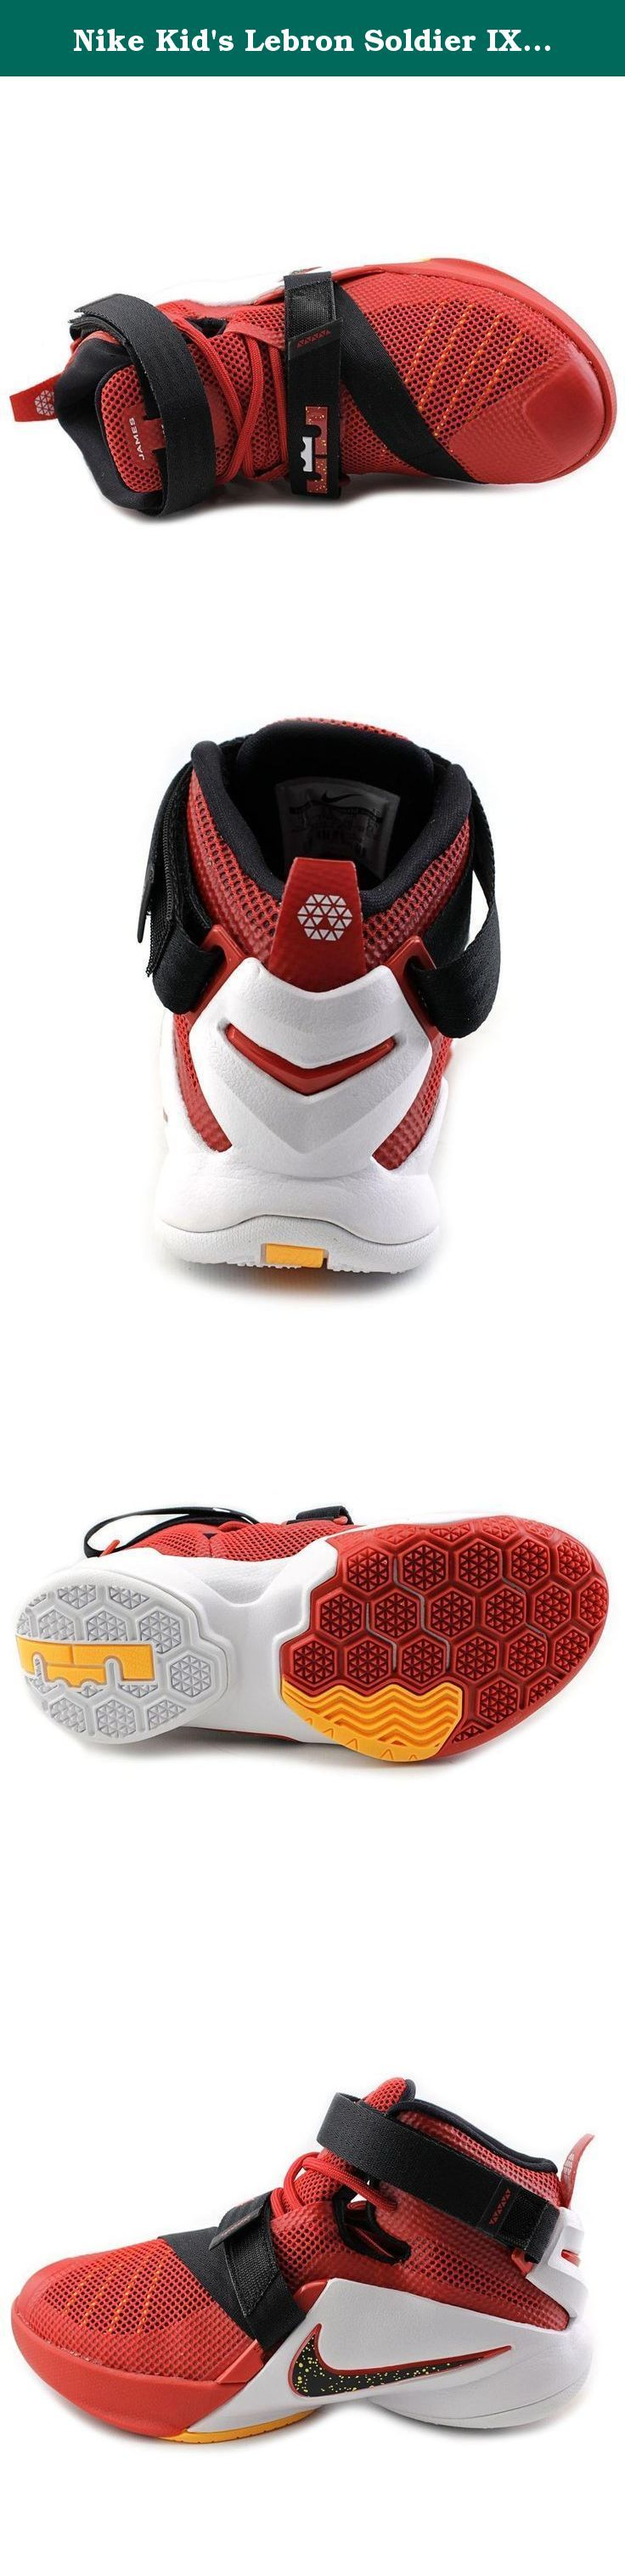 Nike Kid's Lebron Soldier IX GS, UNIVERSITY RED/BLACK-TEAM RED-WHITE, Youth Size 7. Nike Kid's Lebron Soldier IX GS, UNIVERSITY RED/BLACK-TEAM RED-WHITE, Youth Size 7.